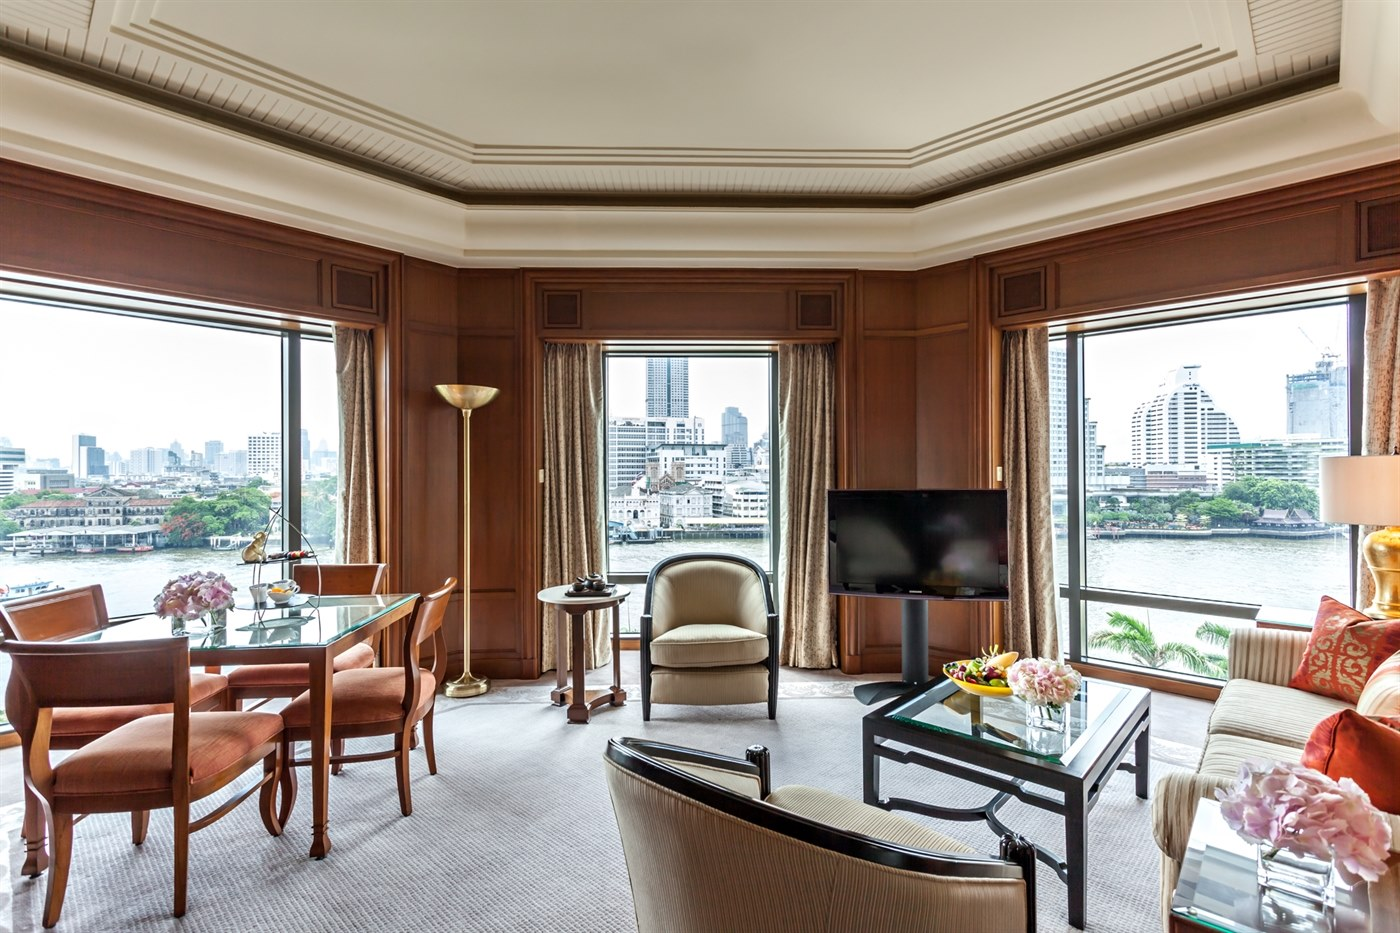 Deluxe Suite at The Peninsula Bangkok